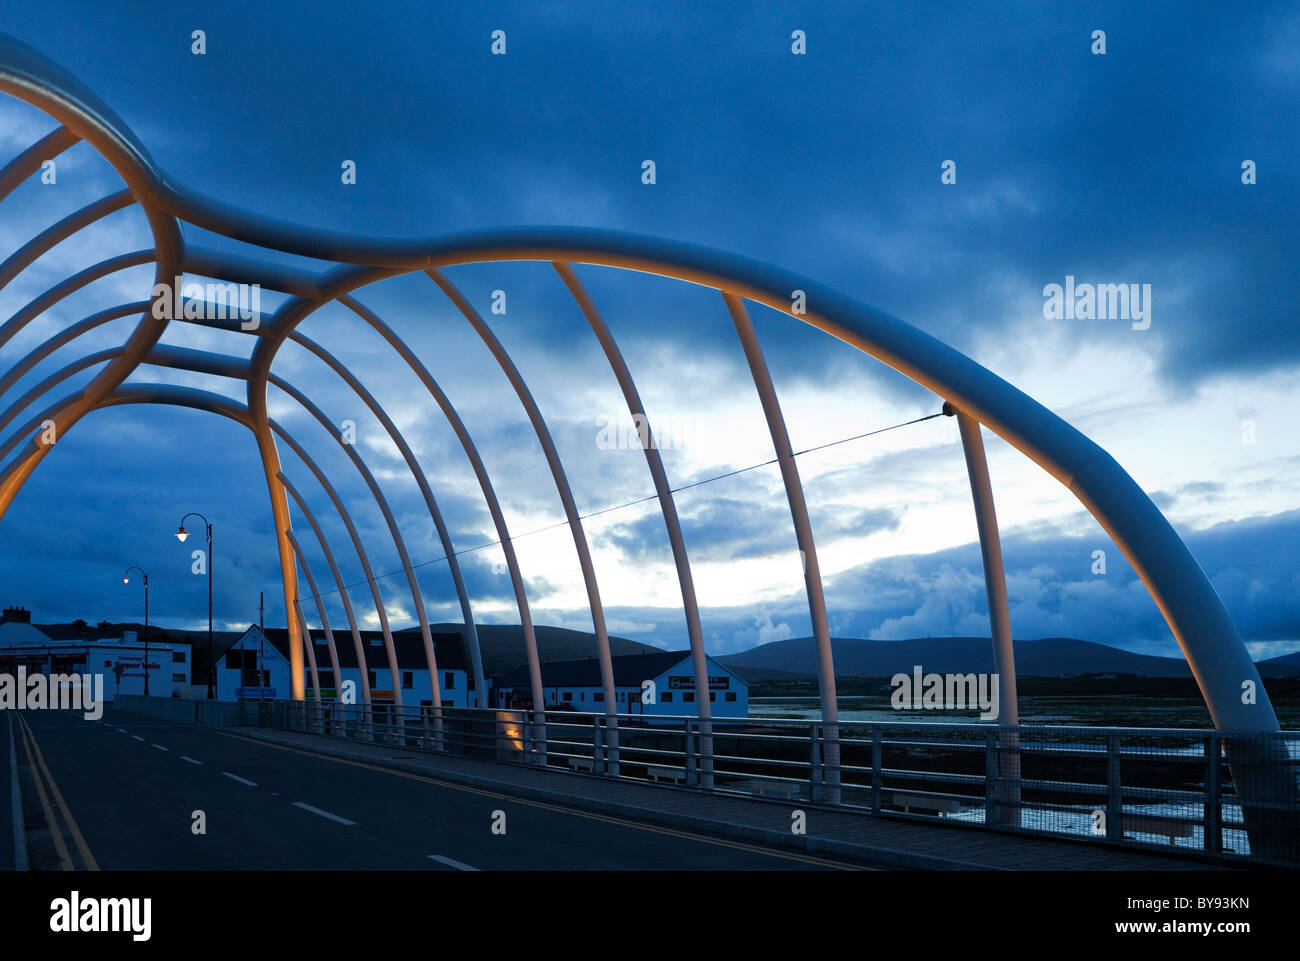 Display Lighting on the Contemporary Bridge to Achill Island at Achill Sound, County Mayo, Ireland - Stock Image